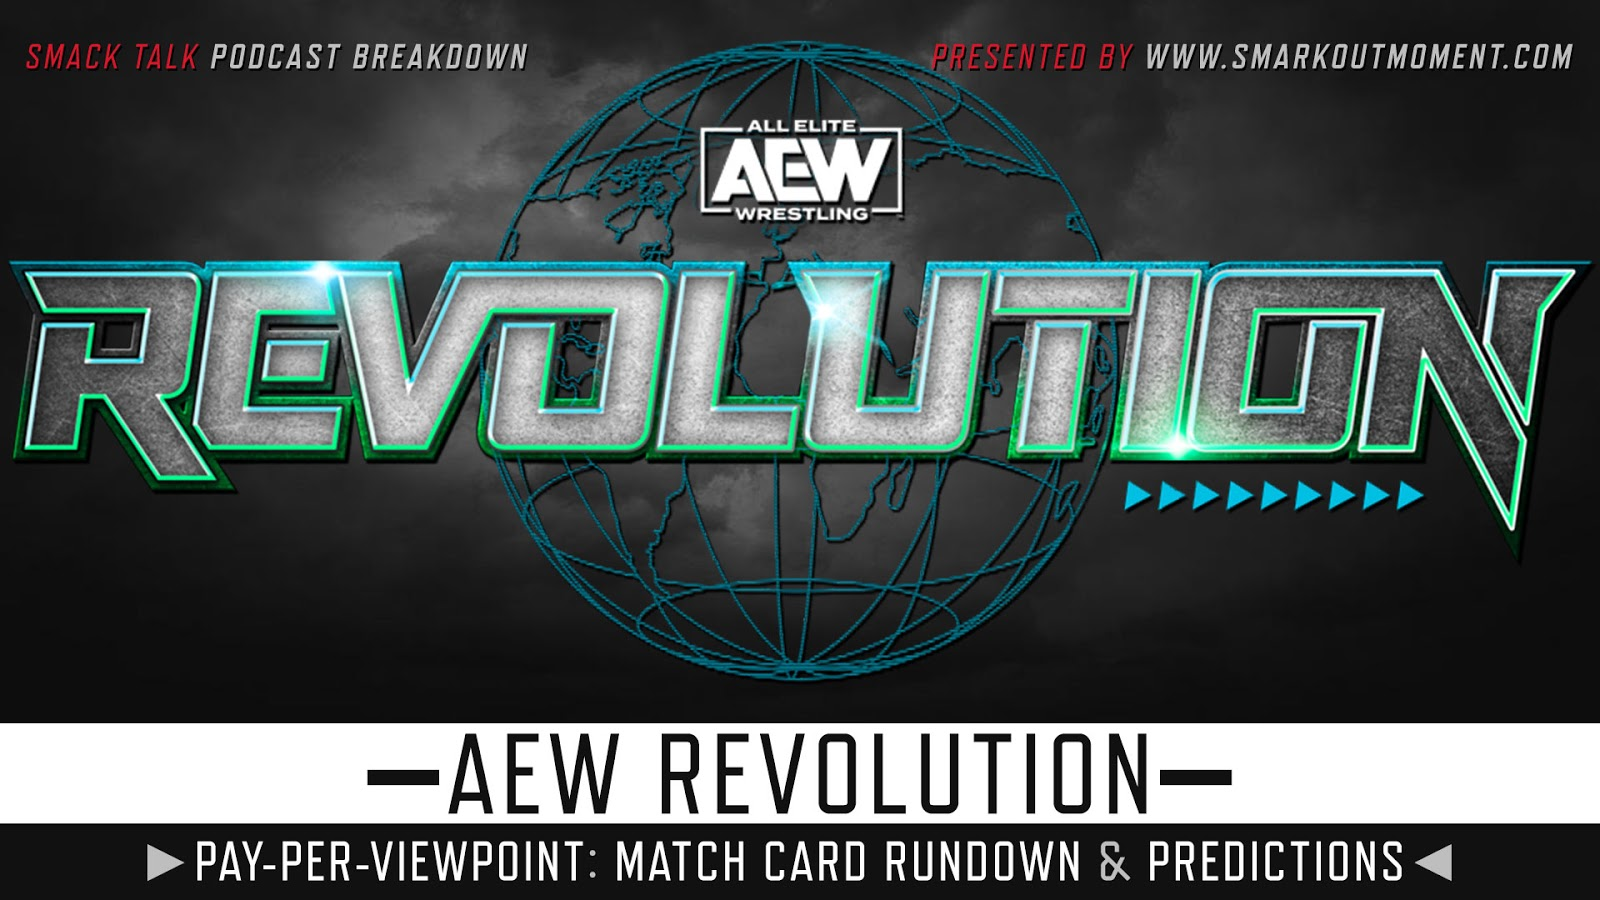 AEW Revolution 2020 spoilers podcast